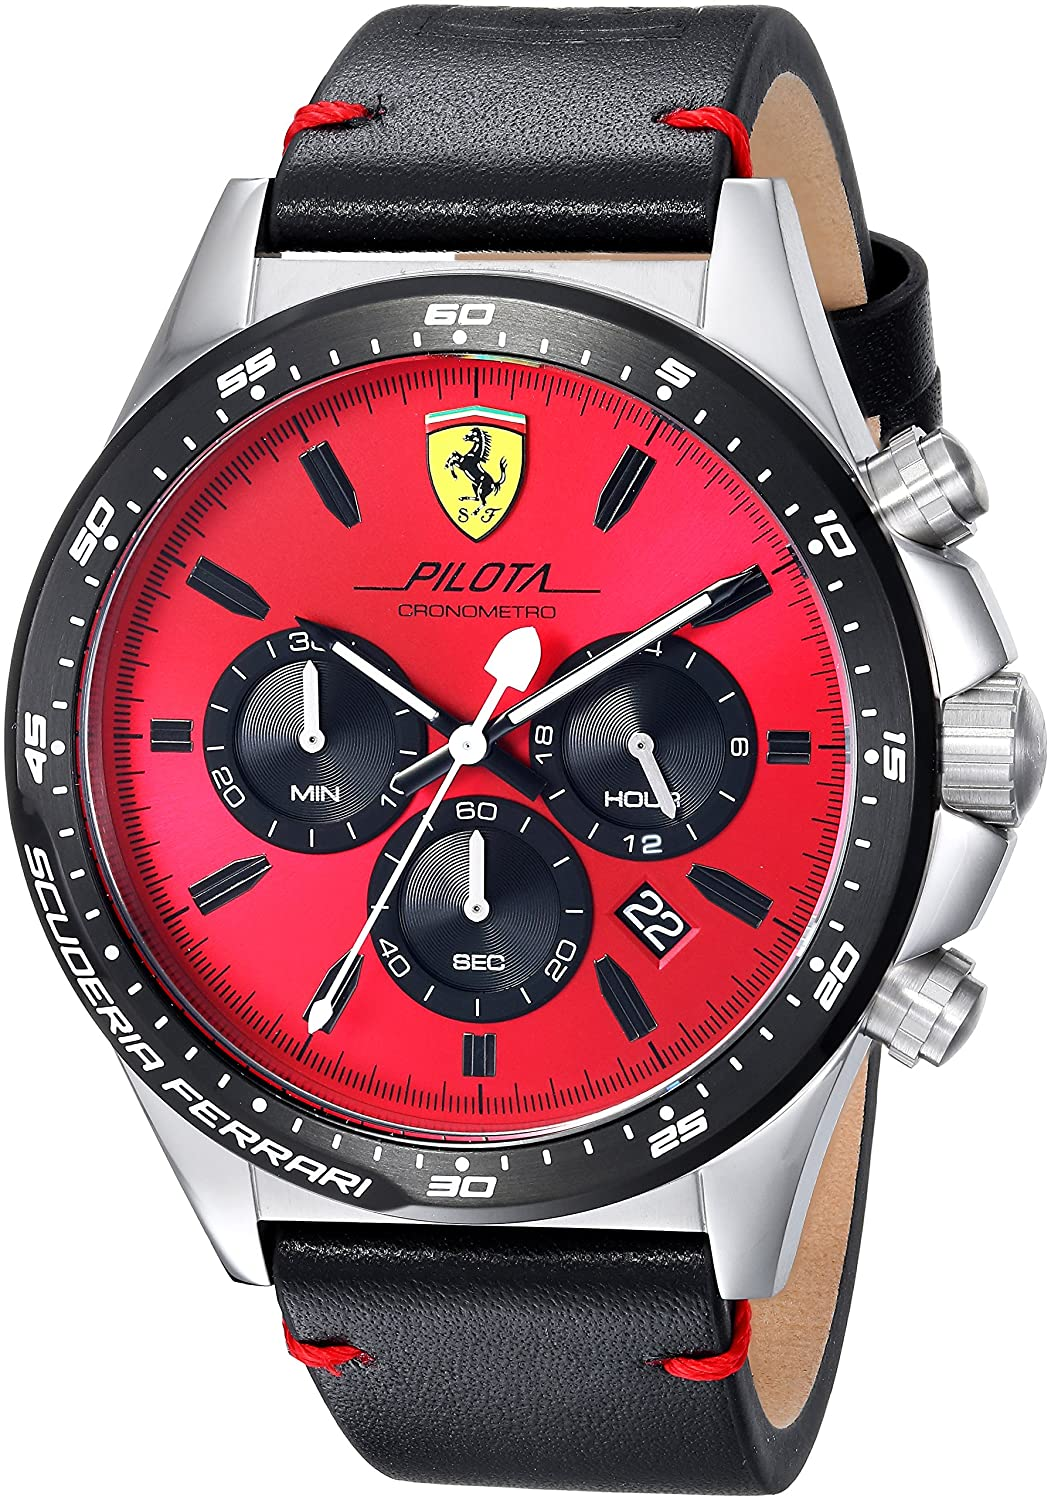 cost much imported leisurely s price ferrari bbby sports does men original a watch usd how pin